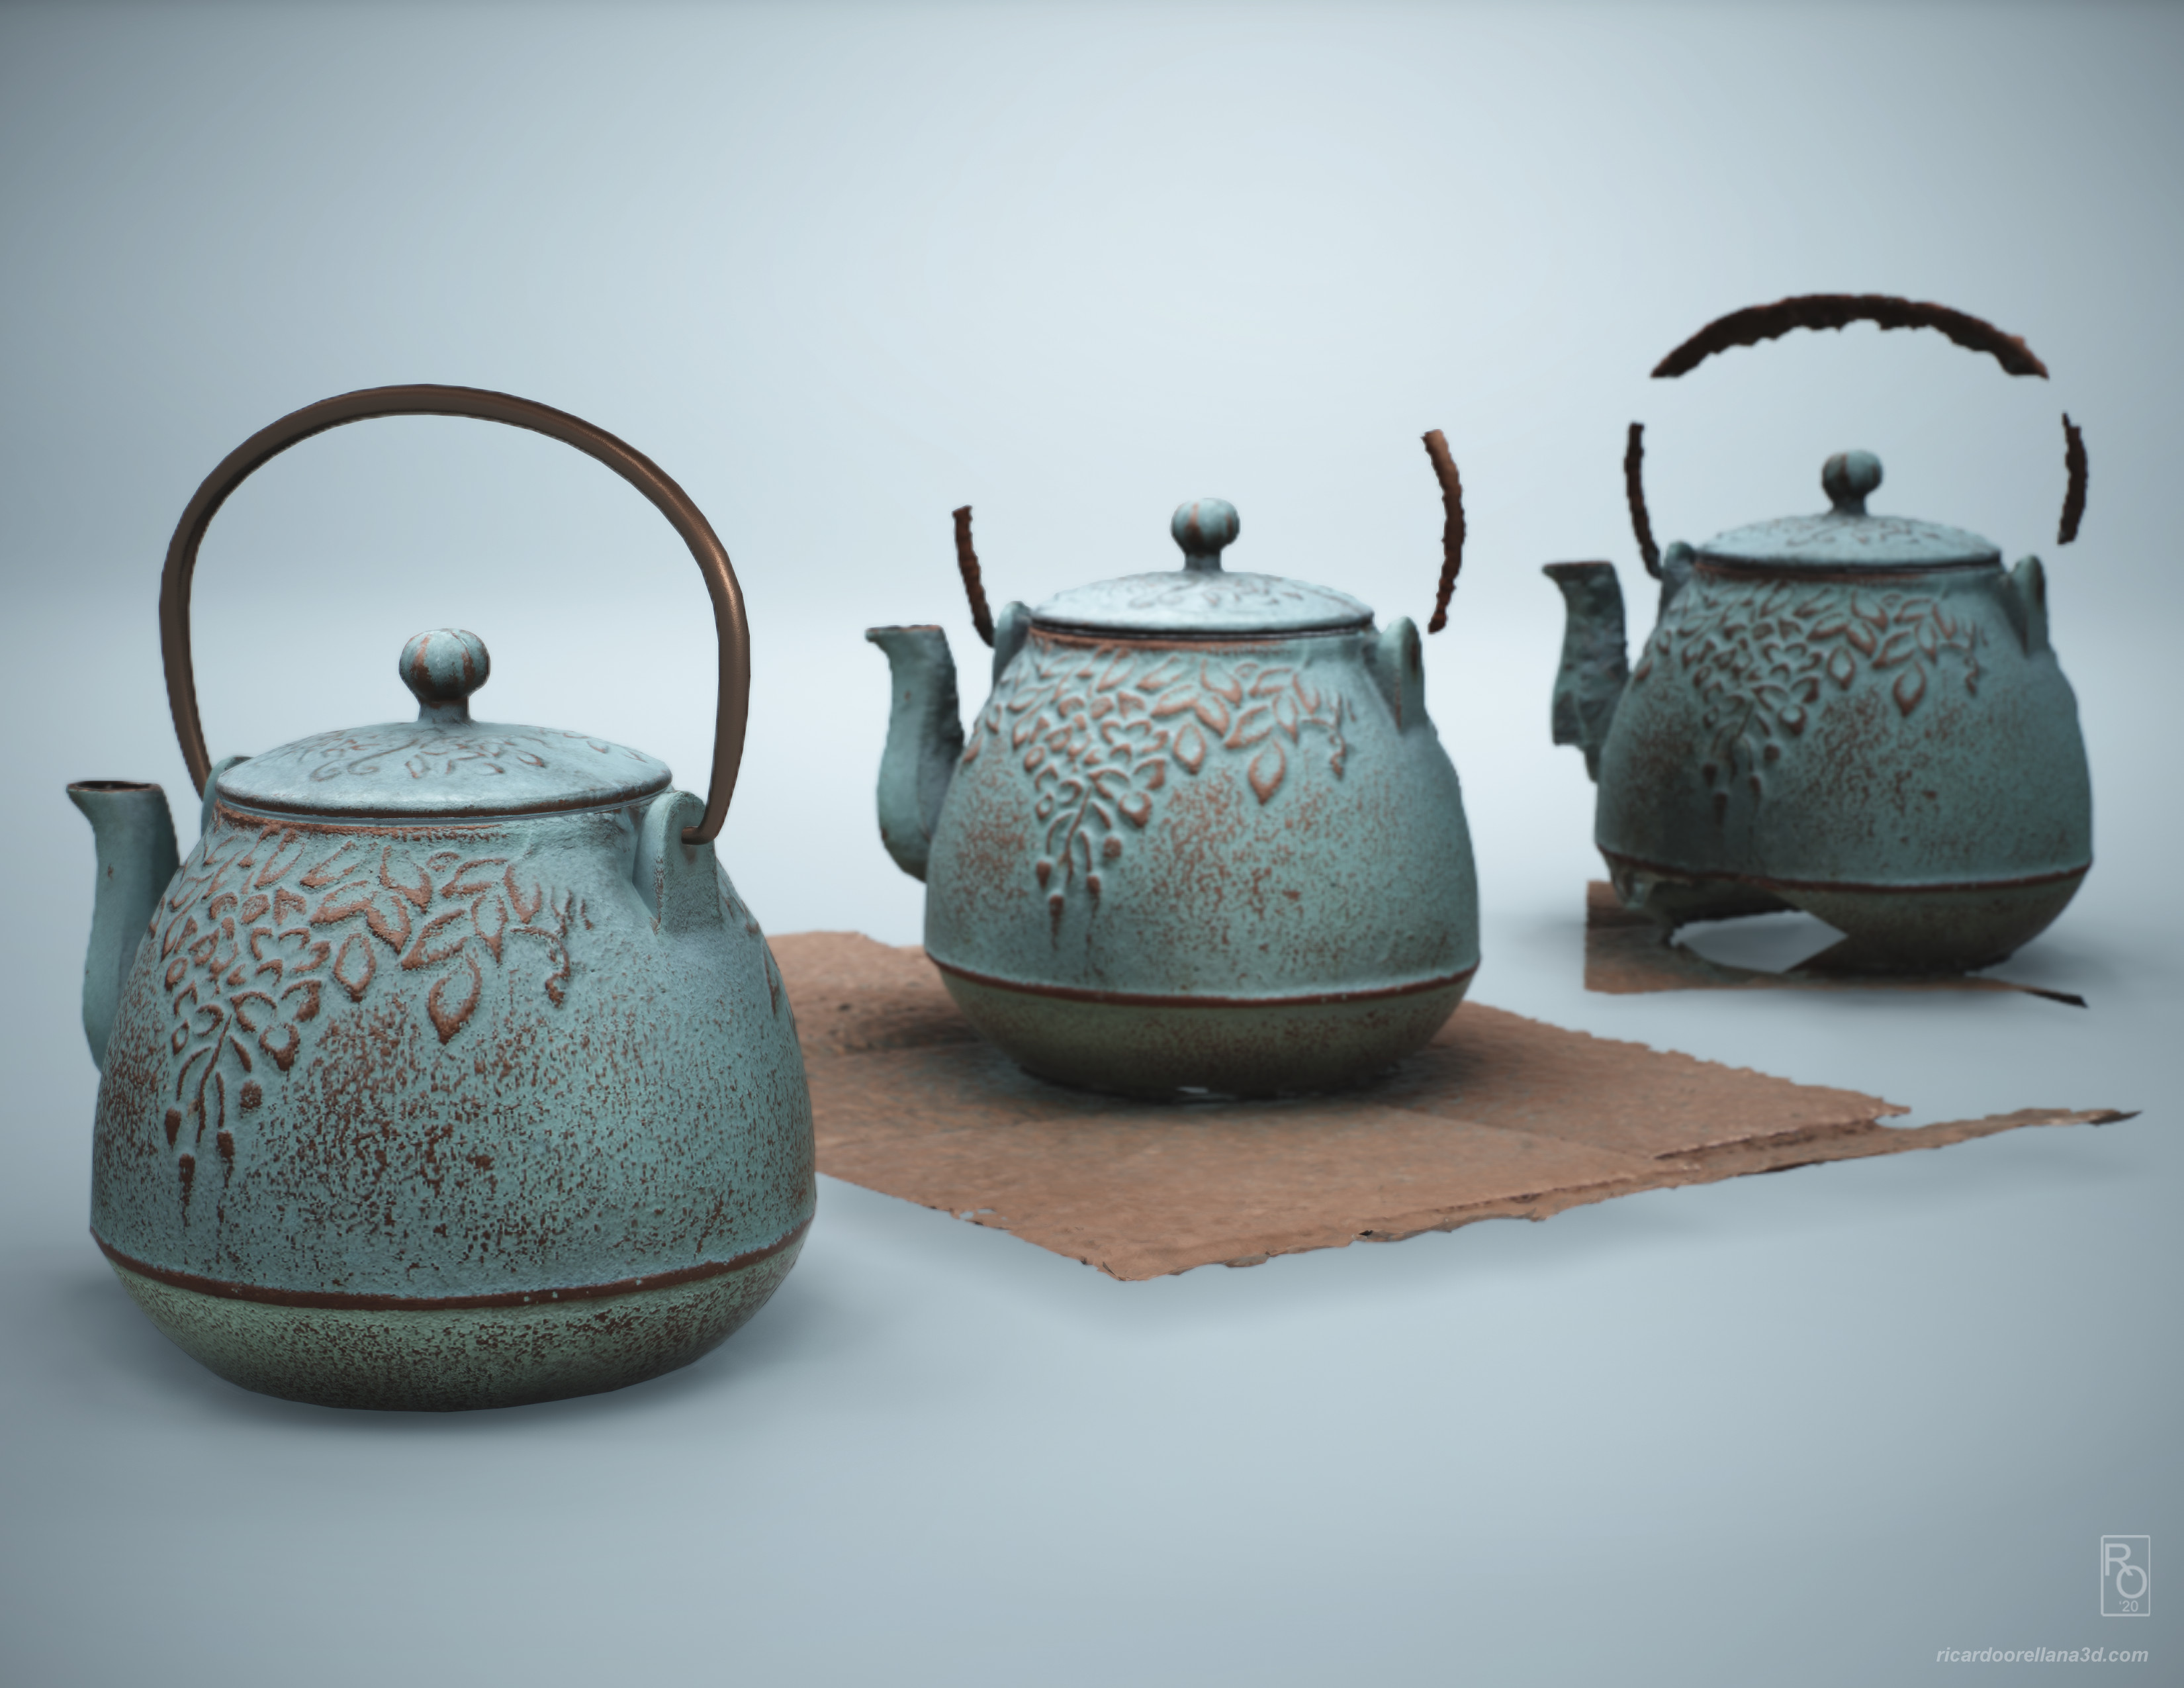 The teapot scan in the middle was the one used as a base for geometry reconstruction